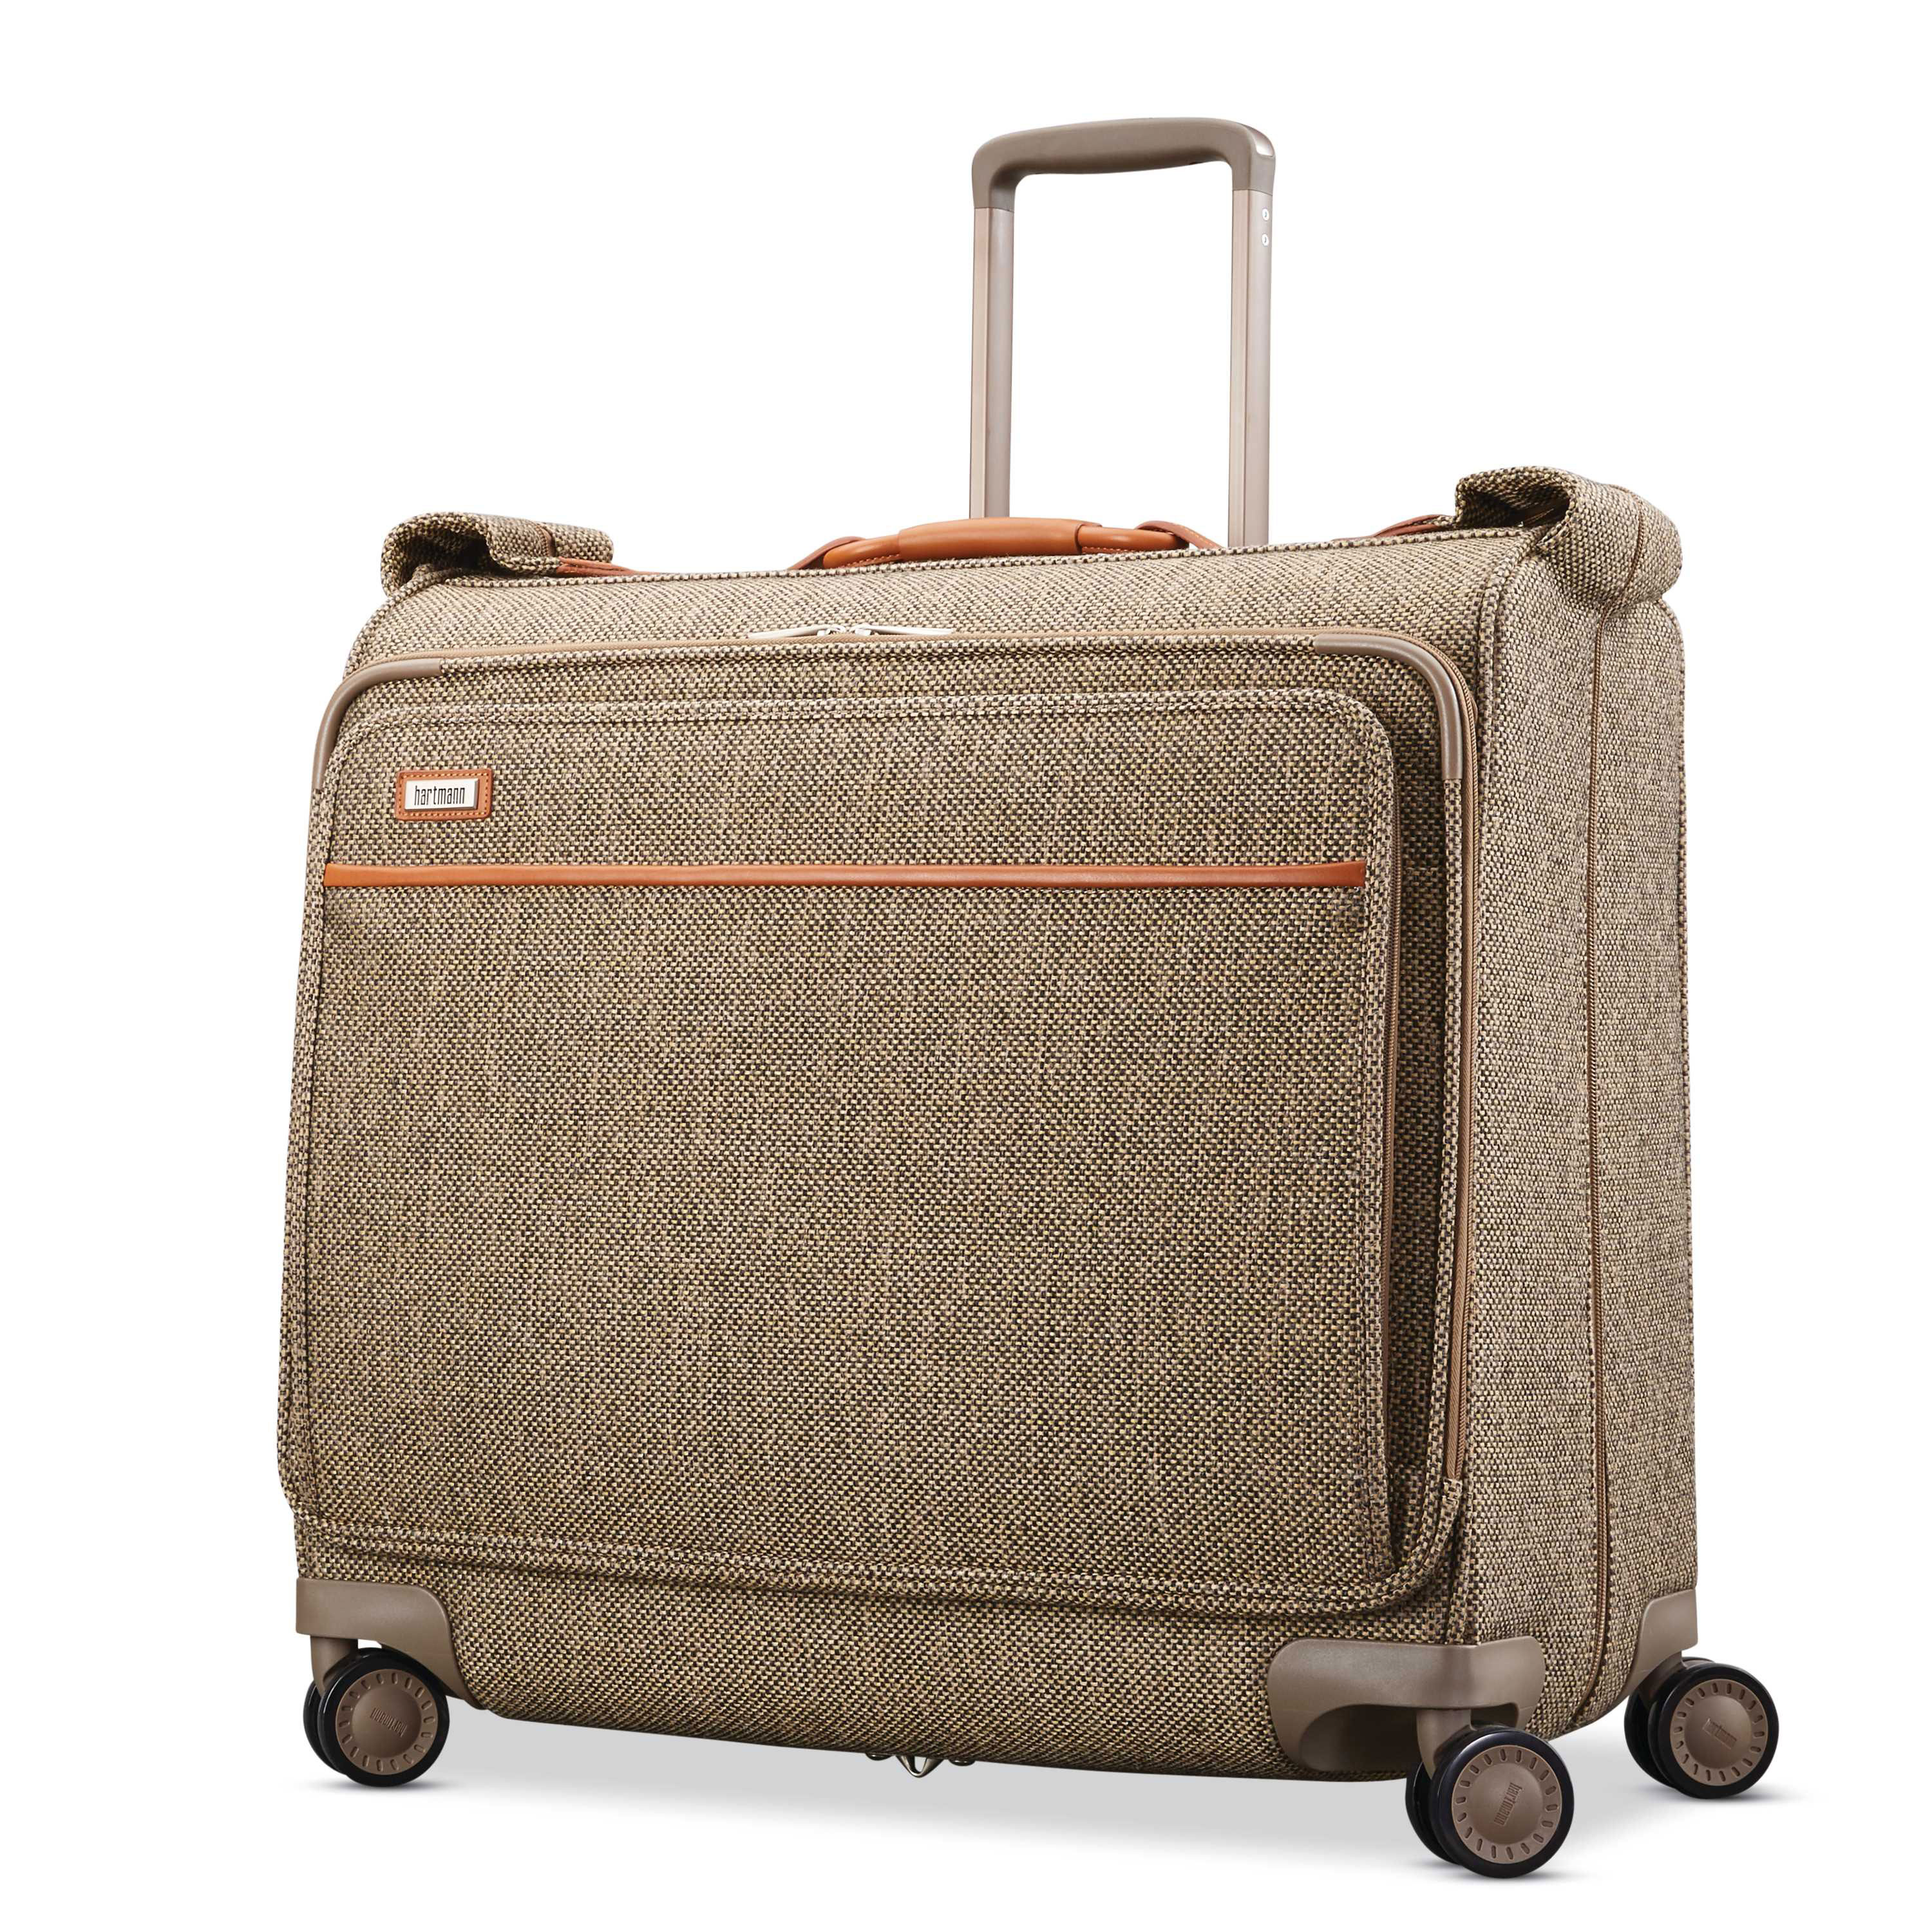 Hartmann Tweed Legend Voyager Spinner Garment Bag In The Color Natural